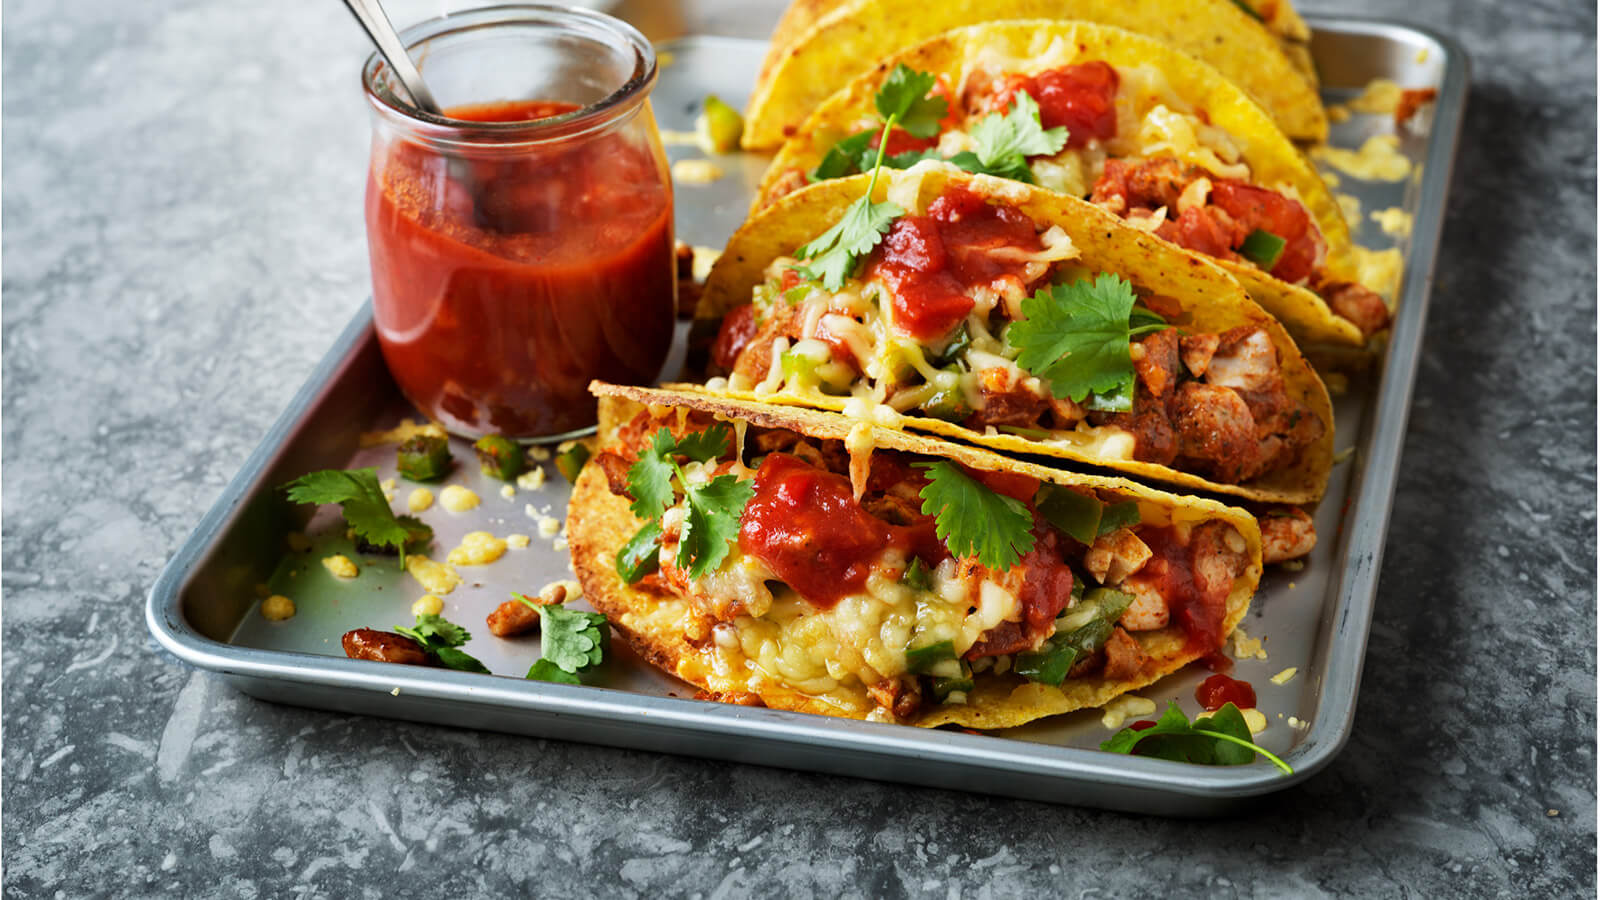 Gratinated tacos on a tray